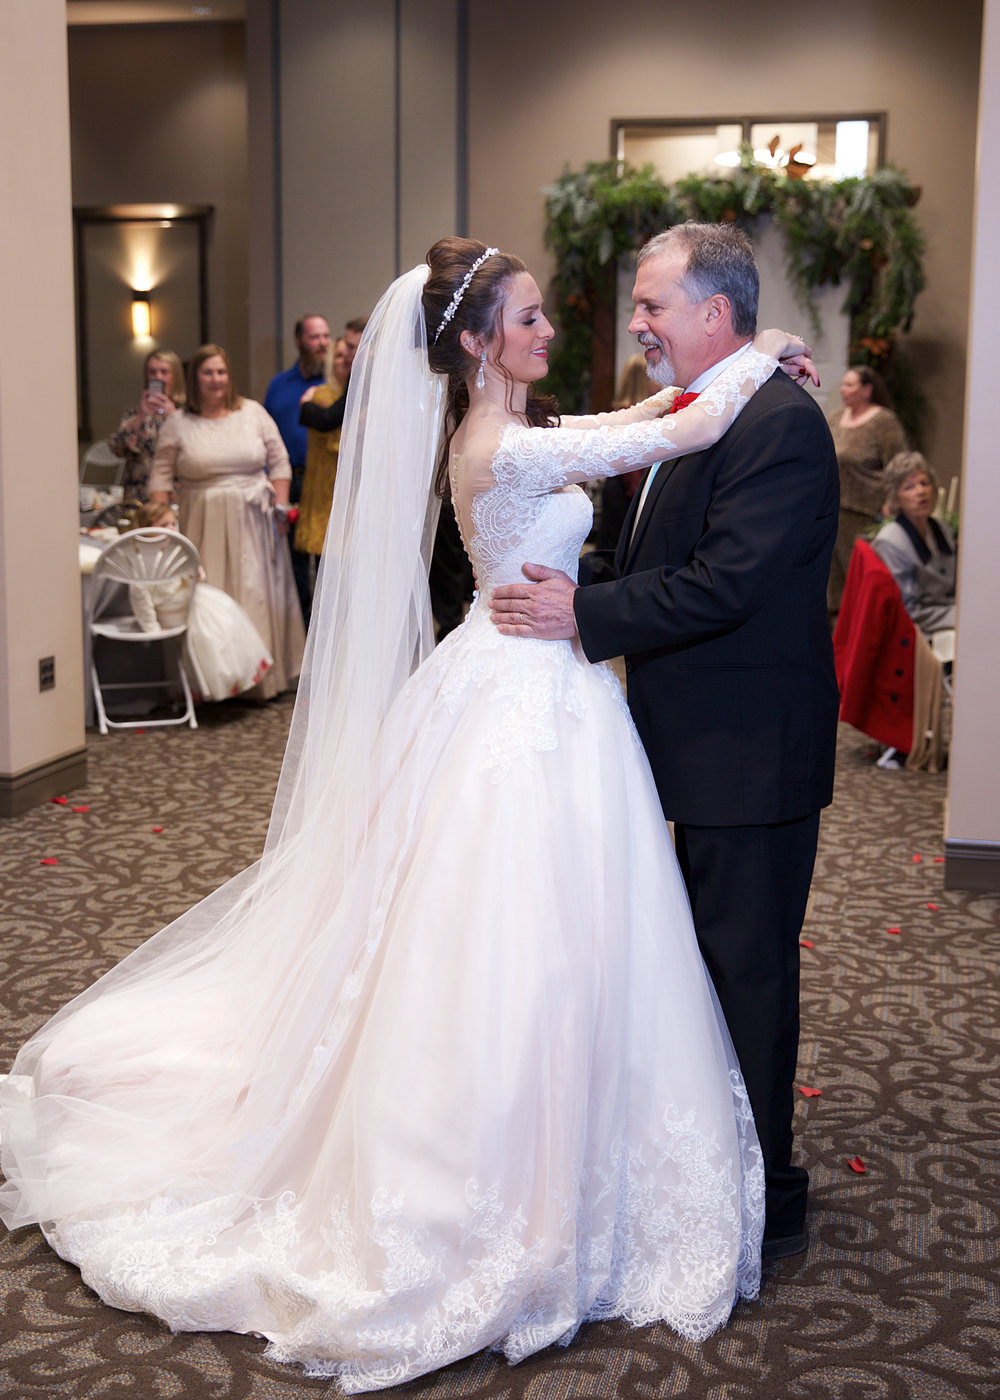 31-father-daughter-dance.jpg